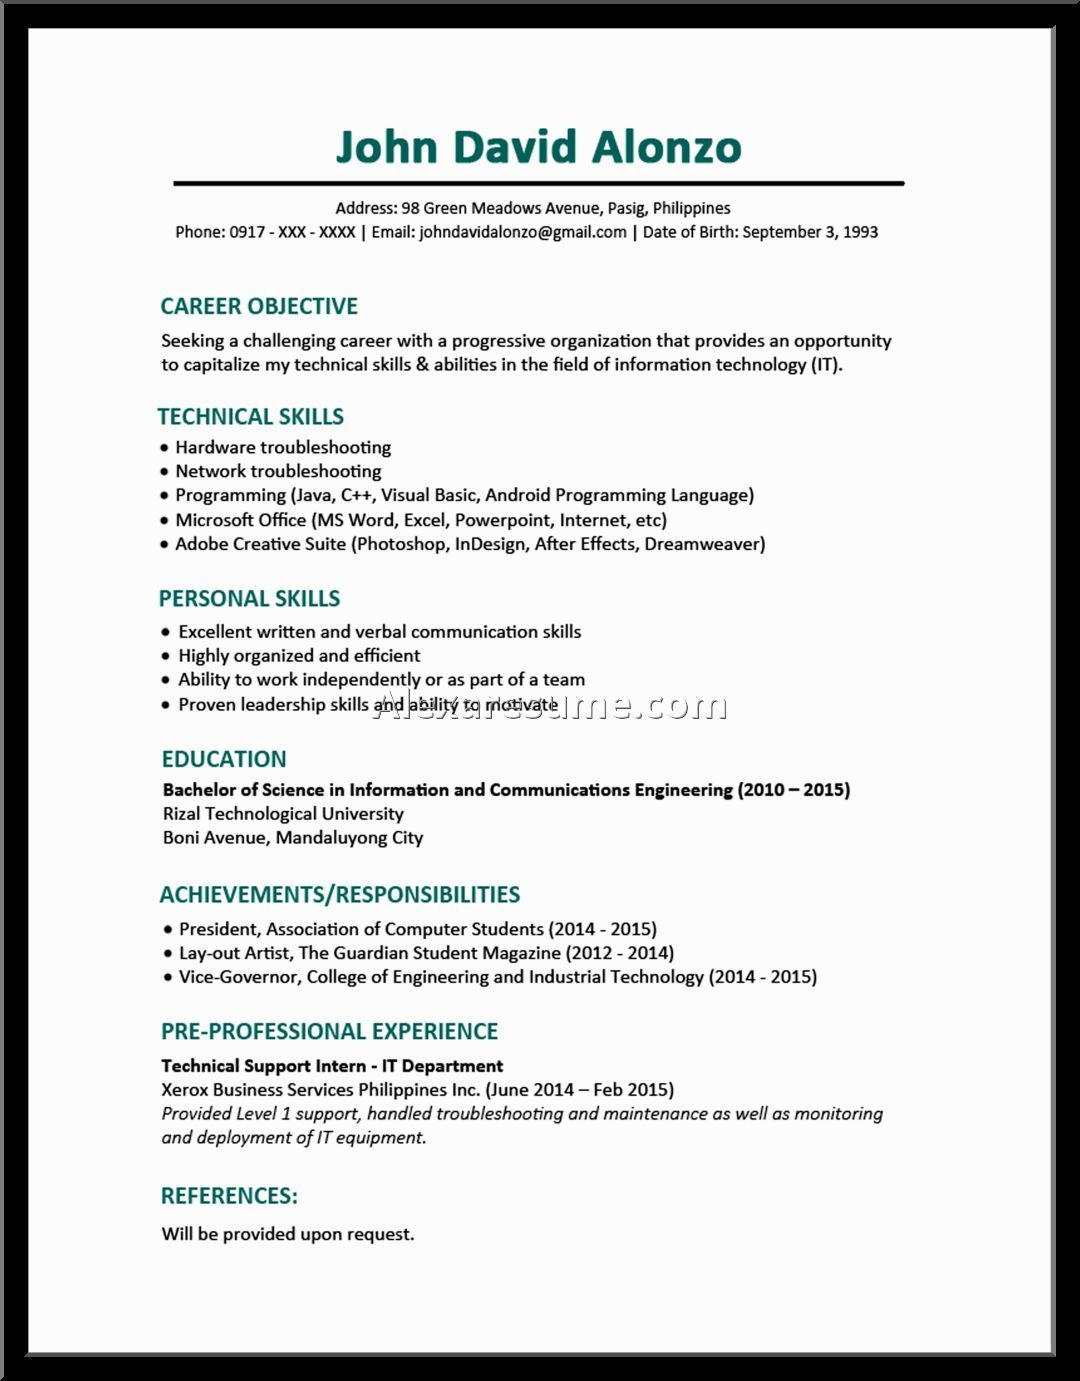 Best Curriculum Vitae For Fresh Graduate Good Resume Objective Examples  Retail Sales  Personal Objective Examples